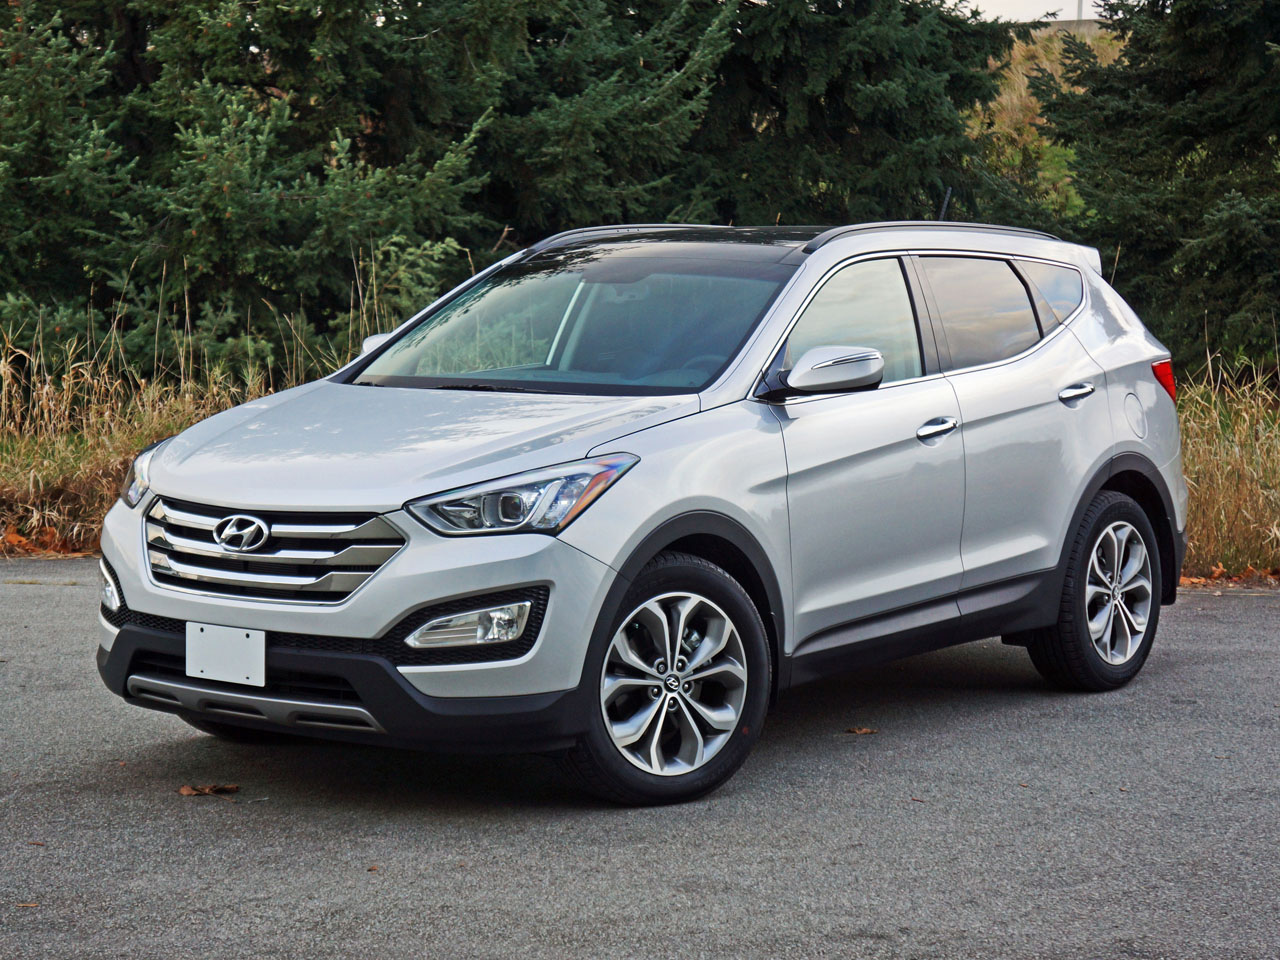 2014 hyundai santa fe sport 2 0t se road test review. Black Bedroom Furniture Sets. Home Design Ideas